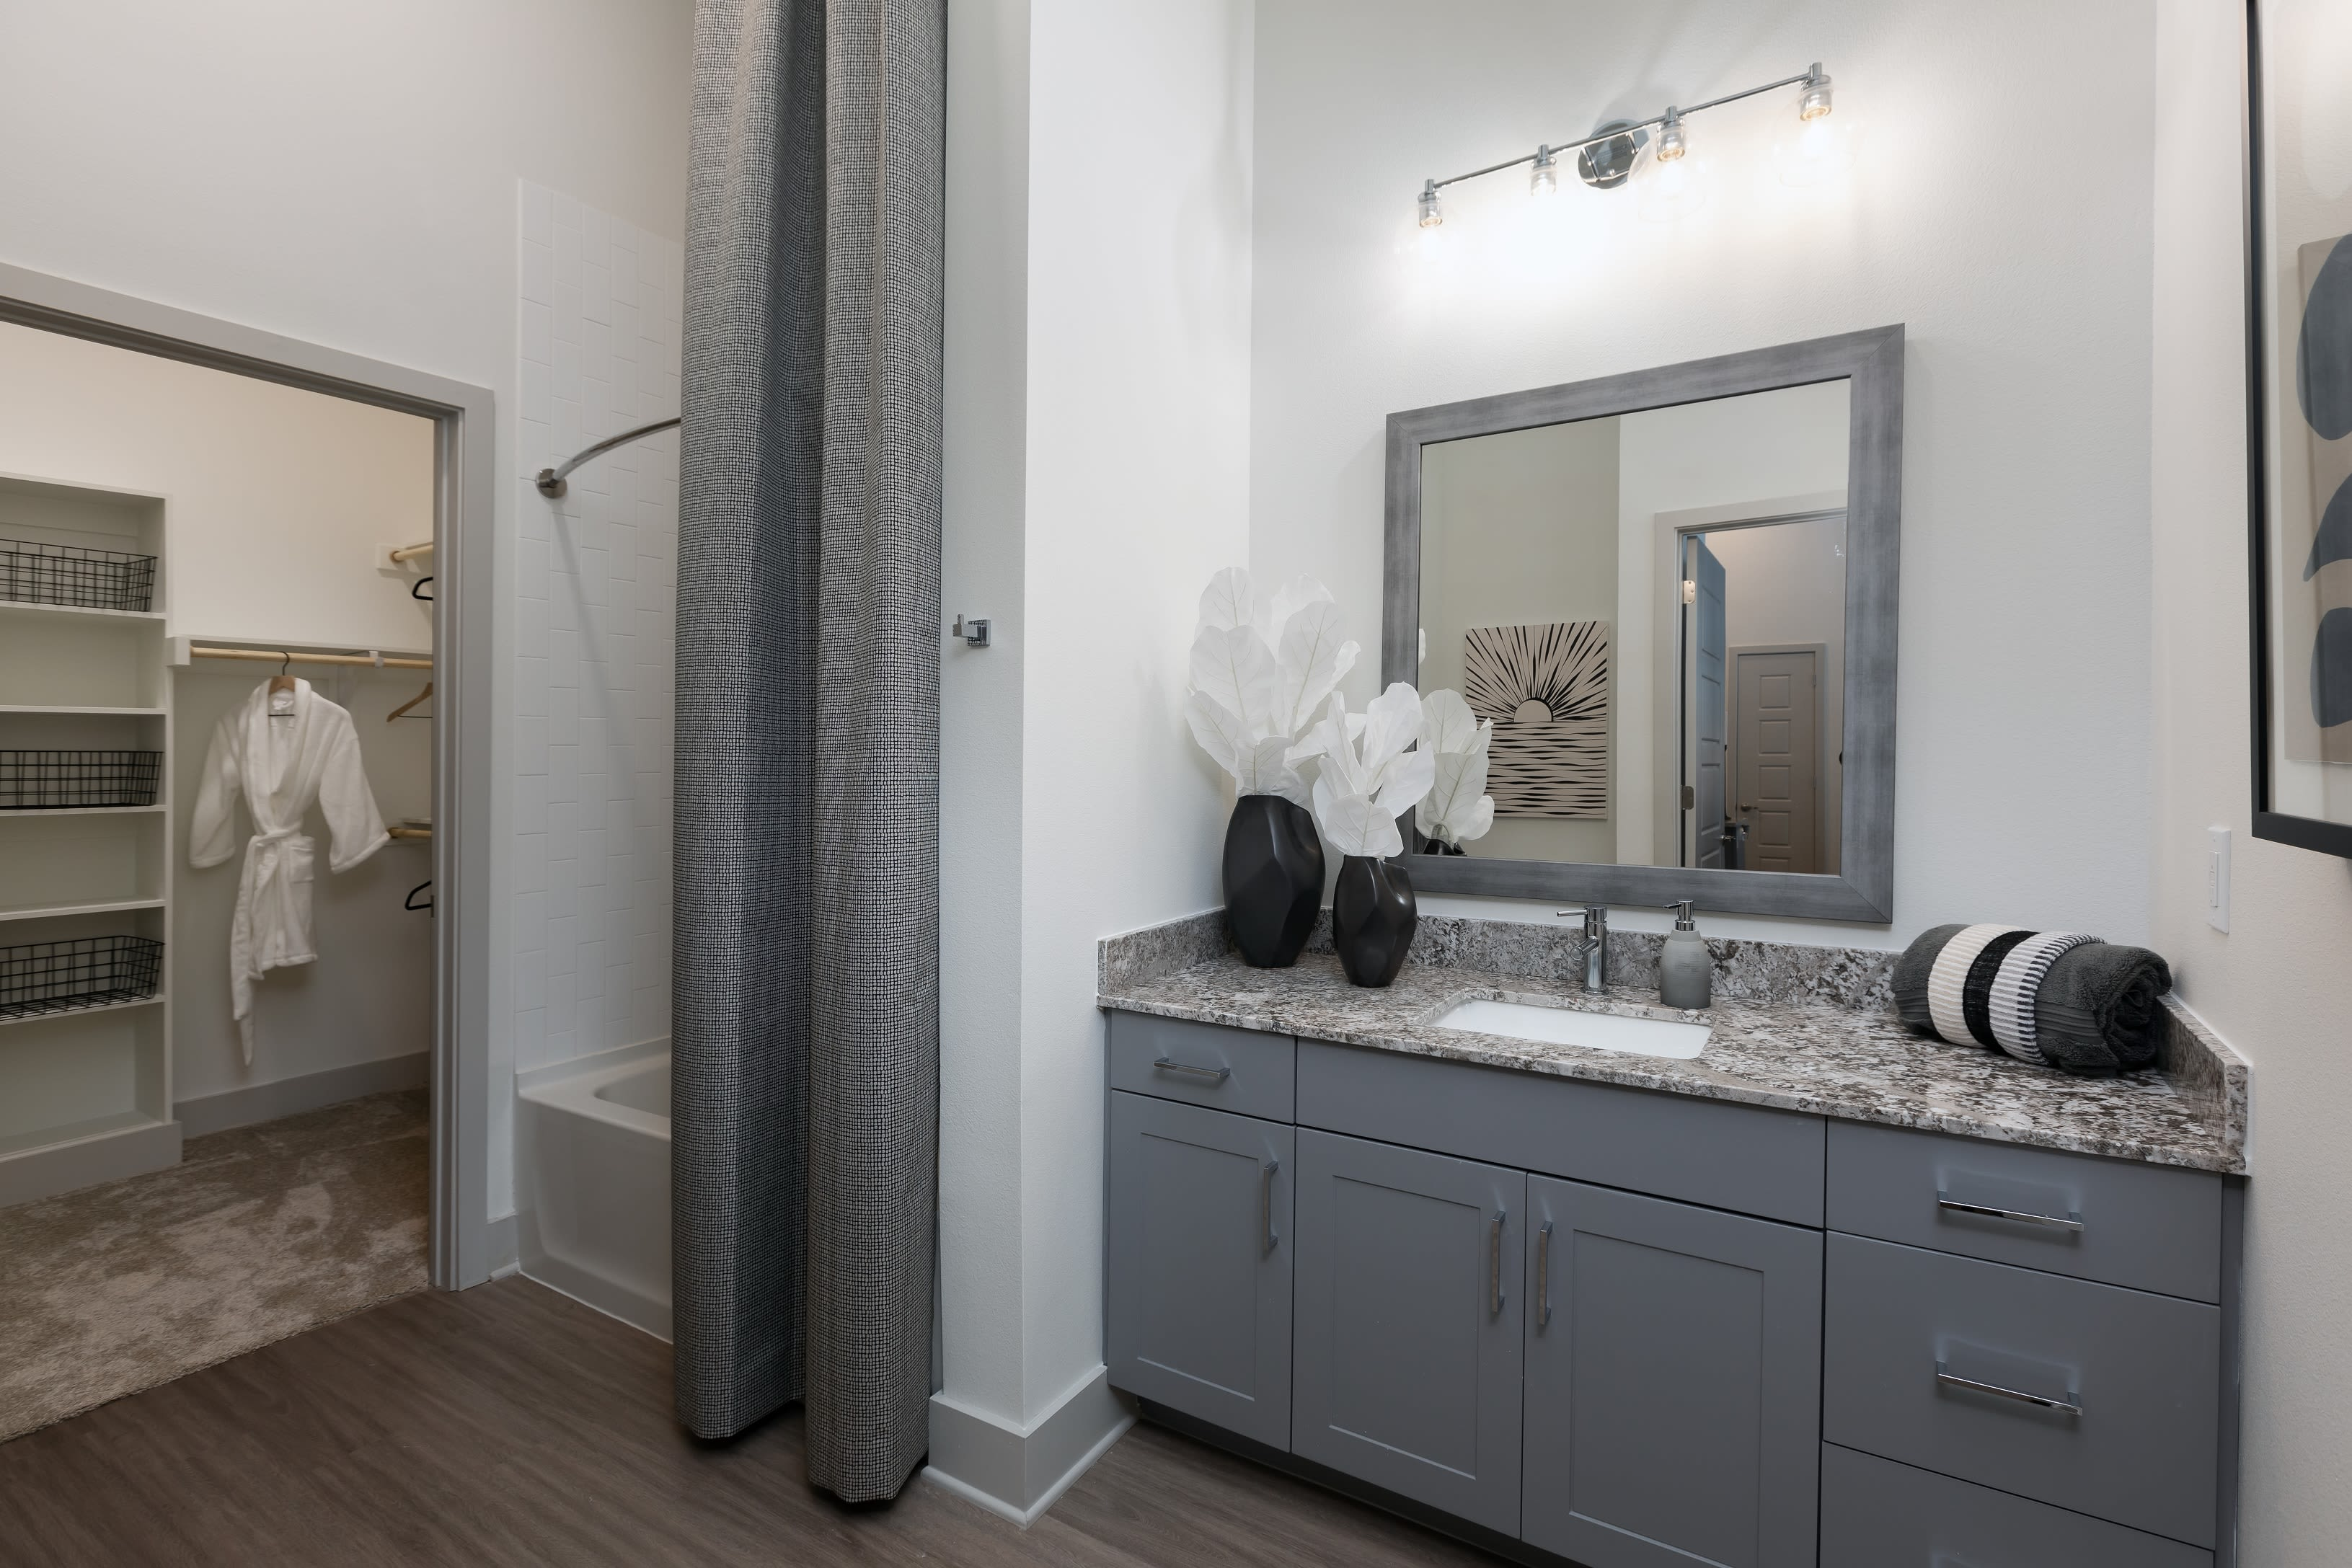 Roomy bathroom with lots of storage space and vanity at The ReVe in Garland, Texas